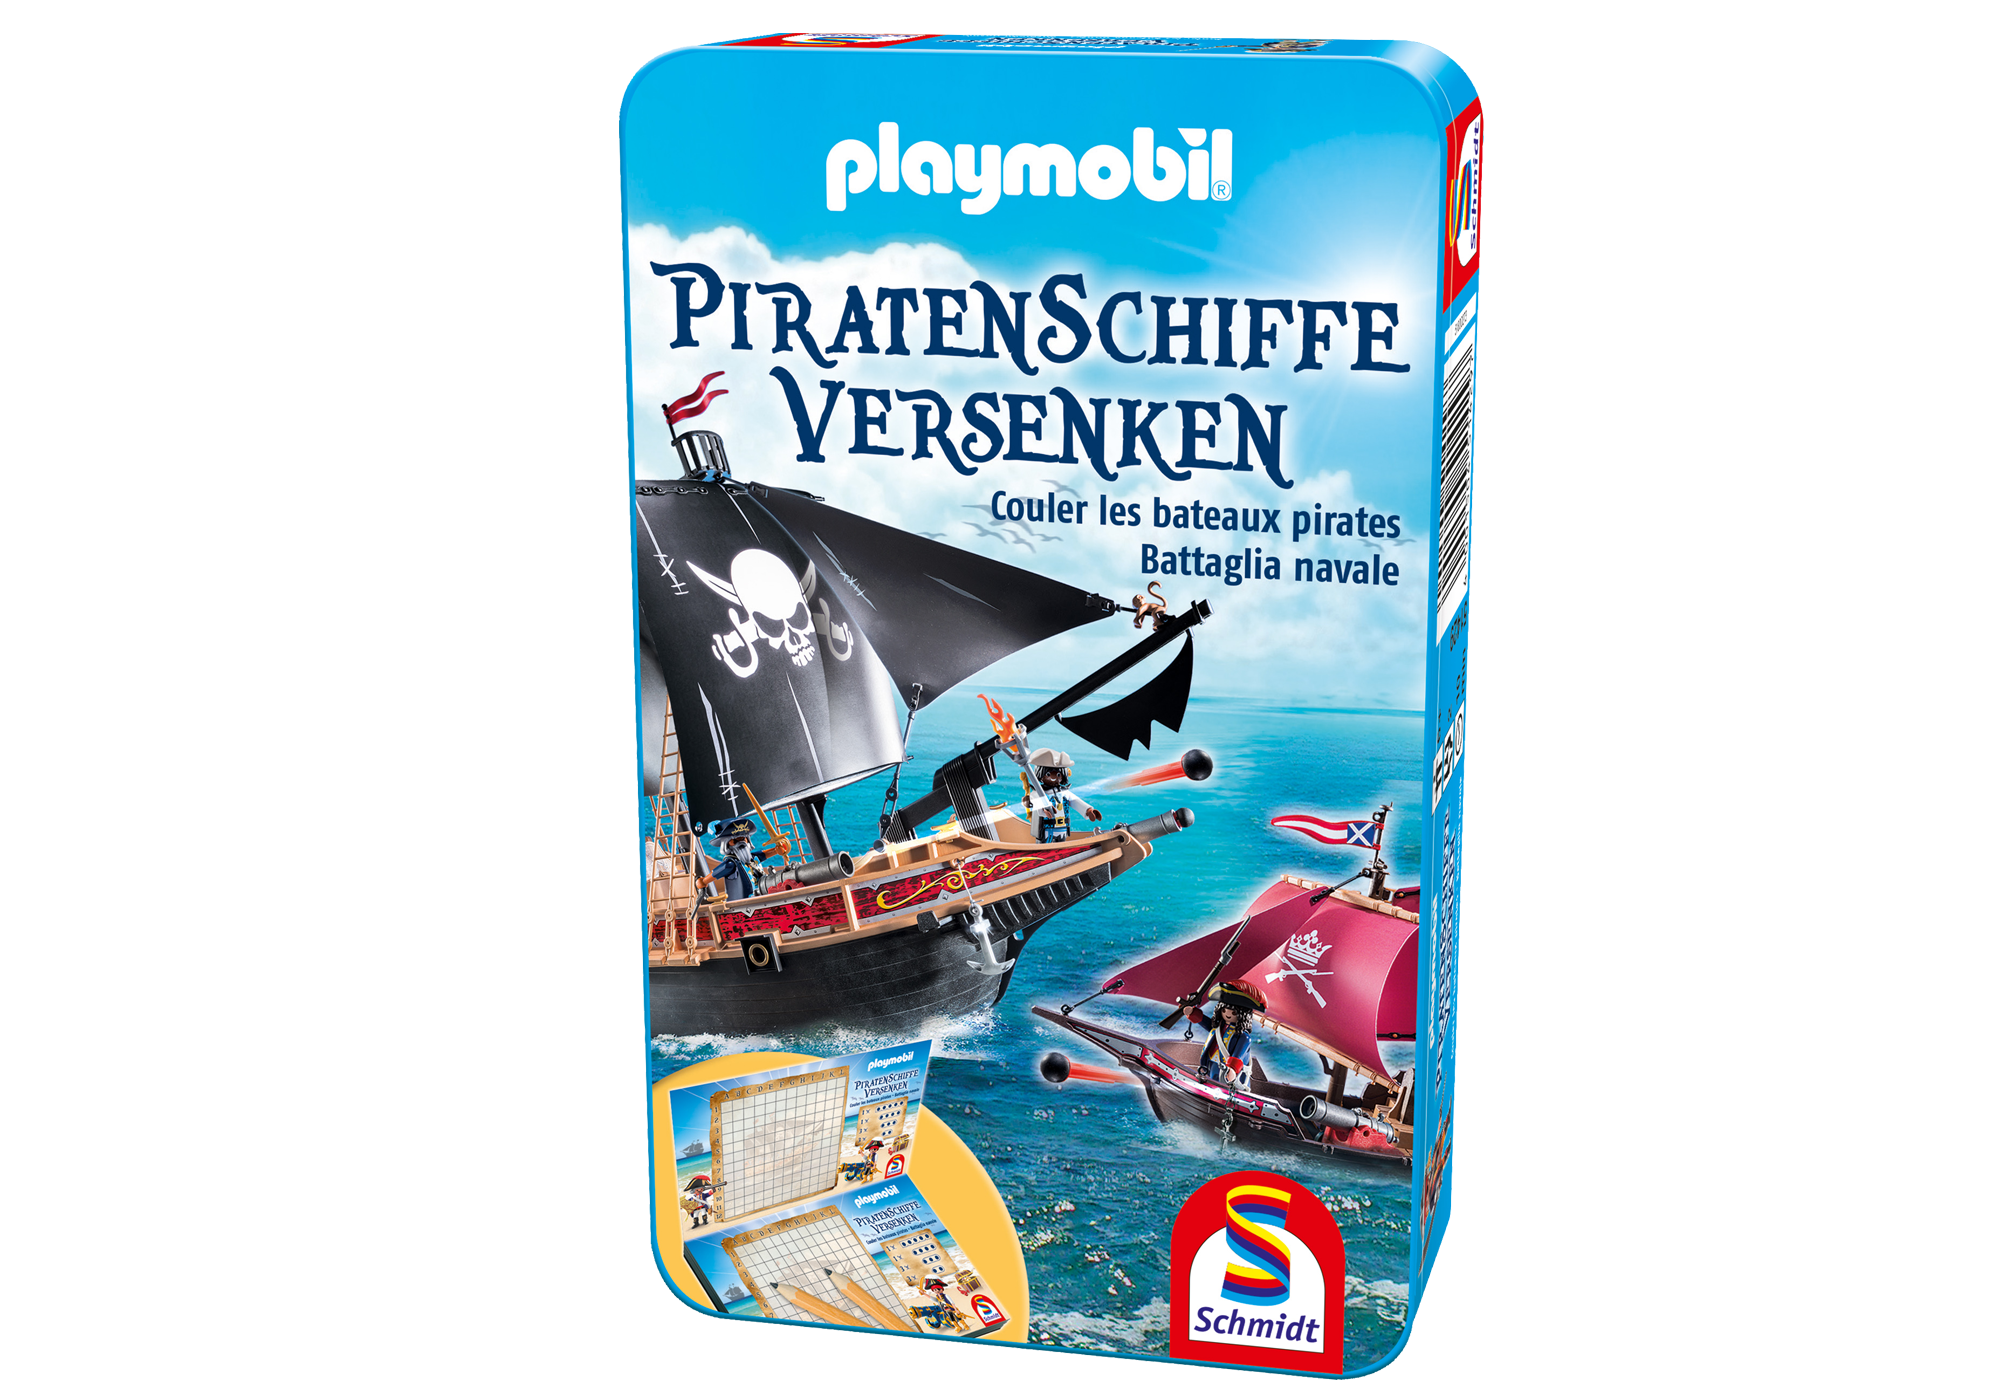 http://media.playmobil.com/i/playmobil/80142_product_detail/Spiel: Piratenschiffe versenken